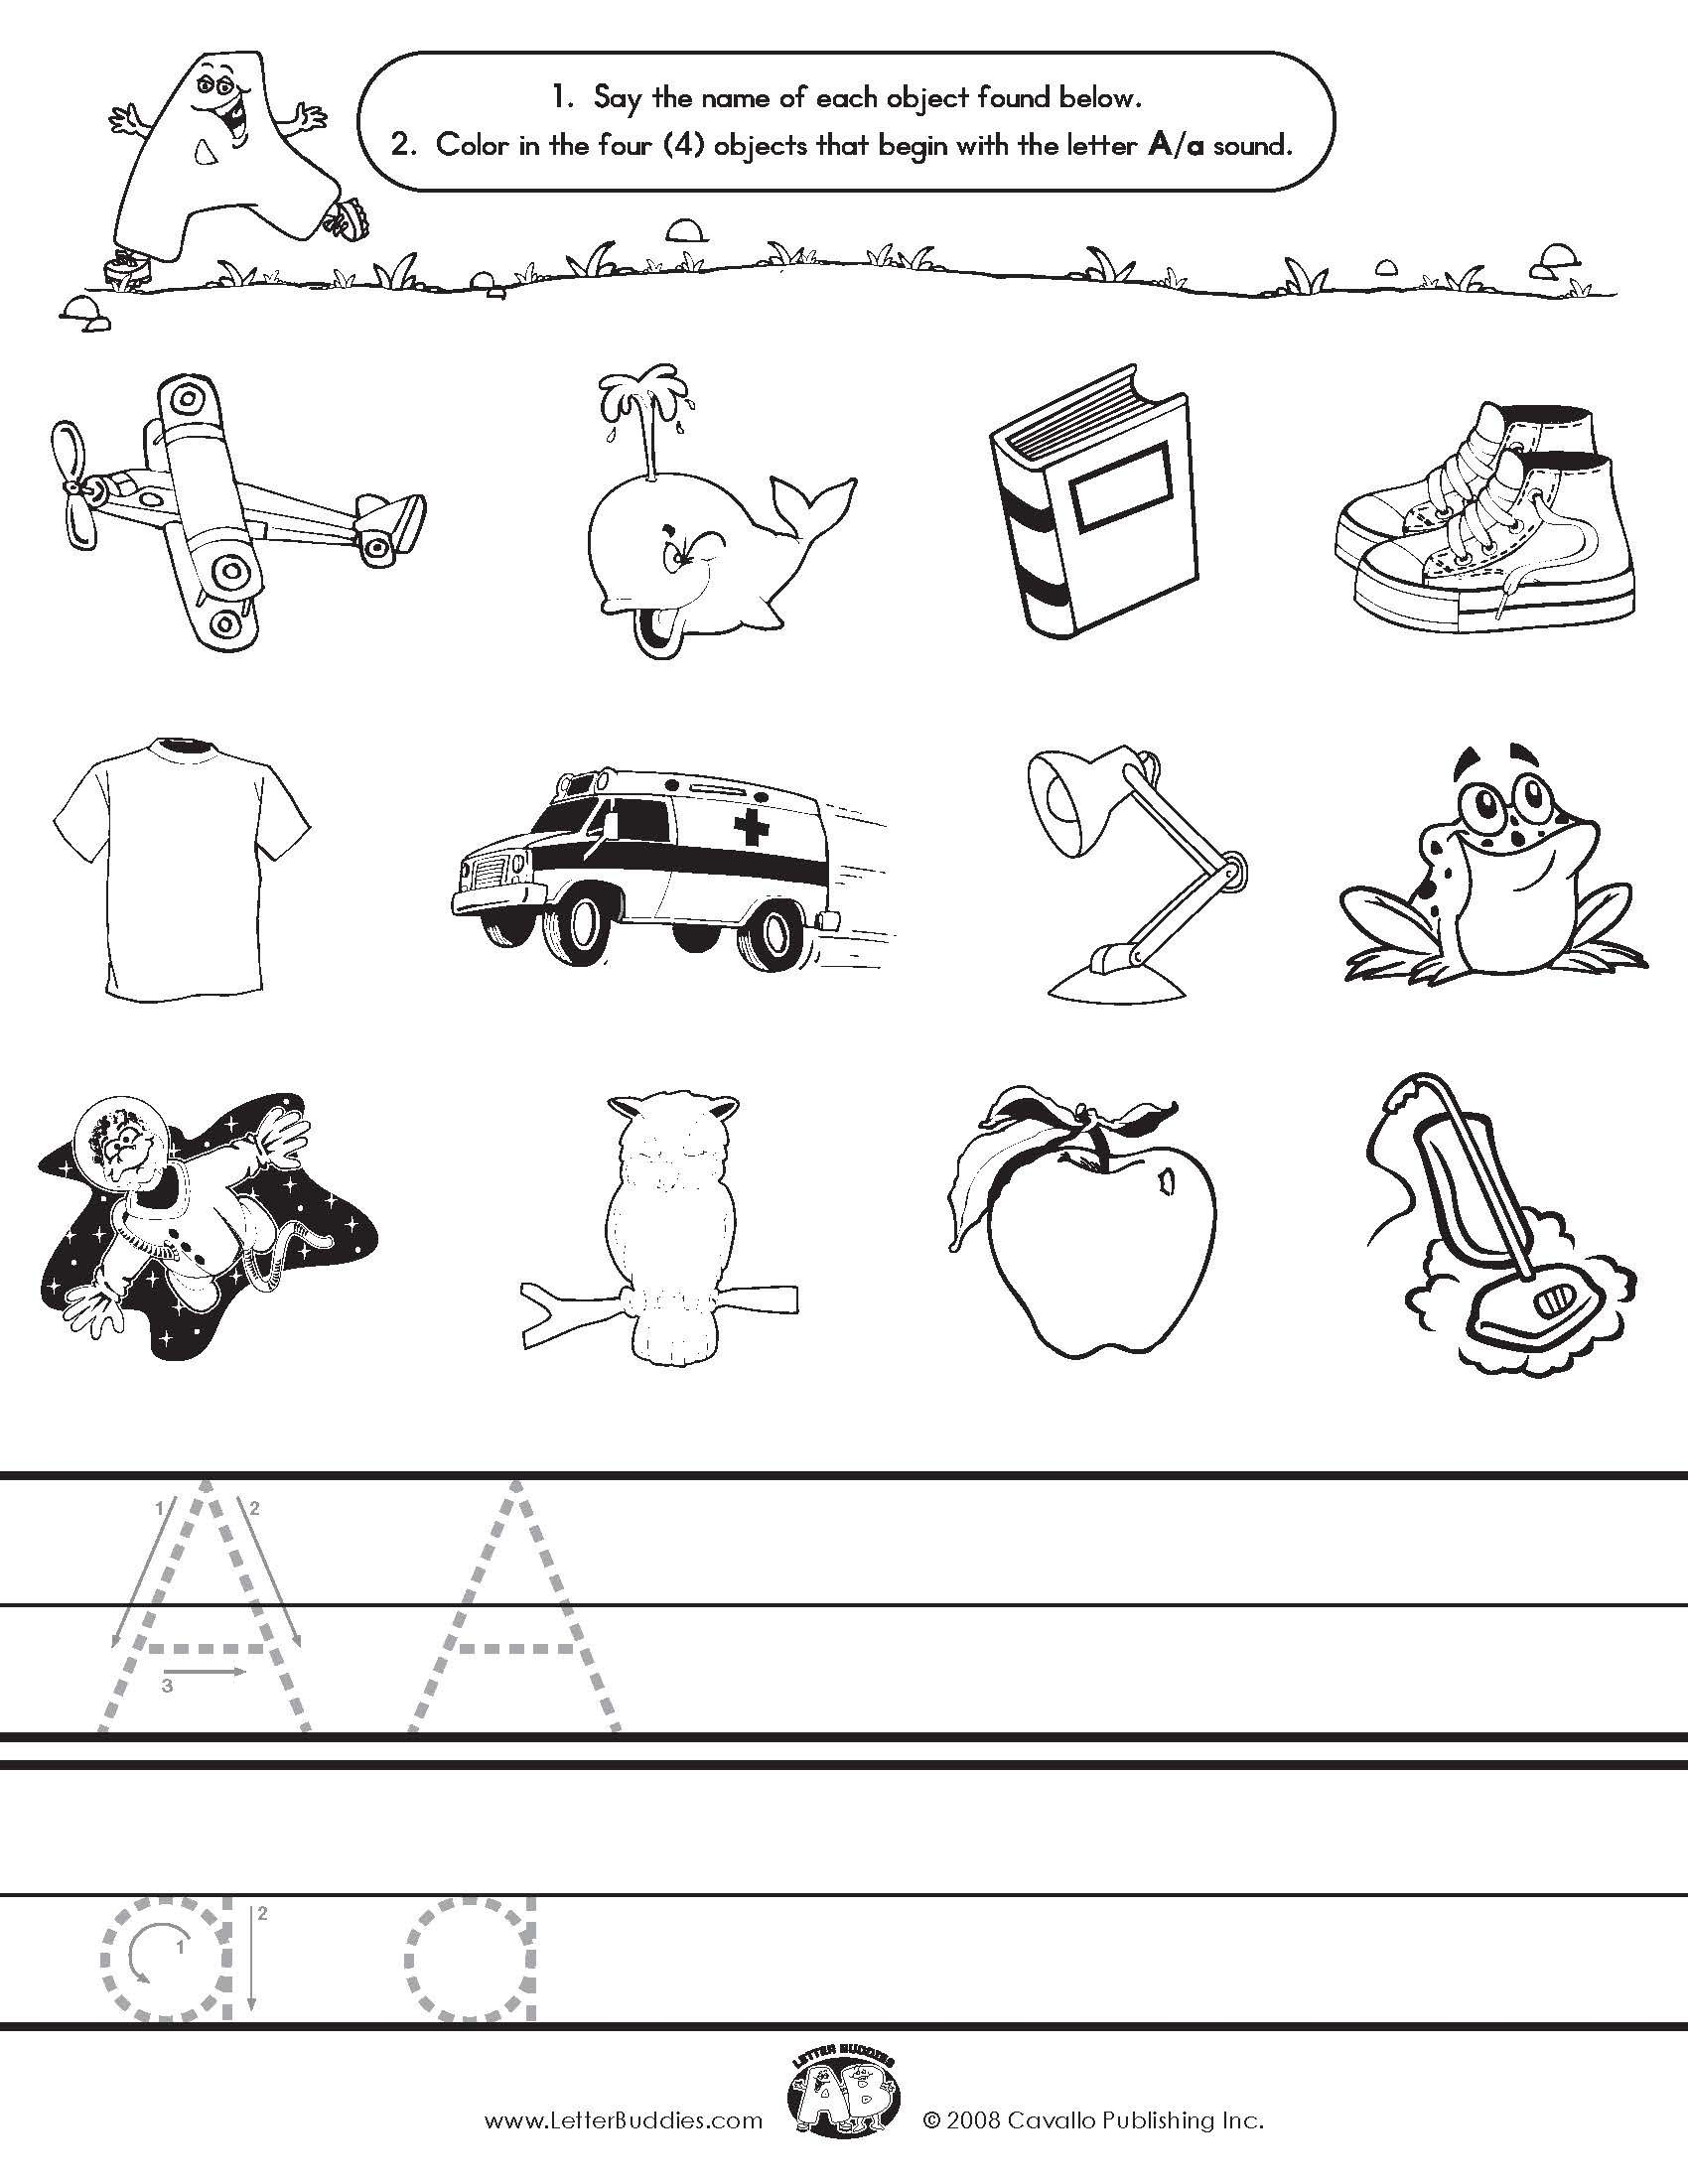 worksheet Initial Sound Worksheets initial sounds writing alphabet language arts ideas writing